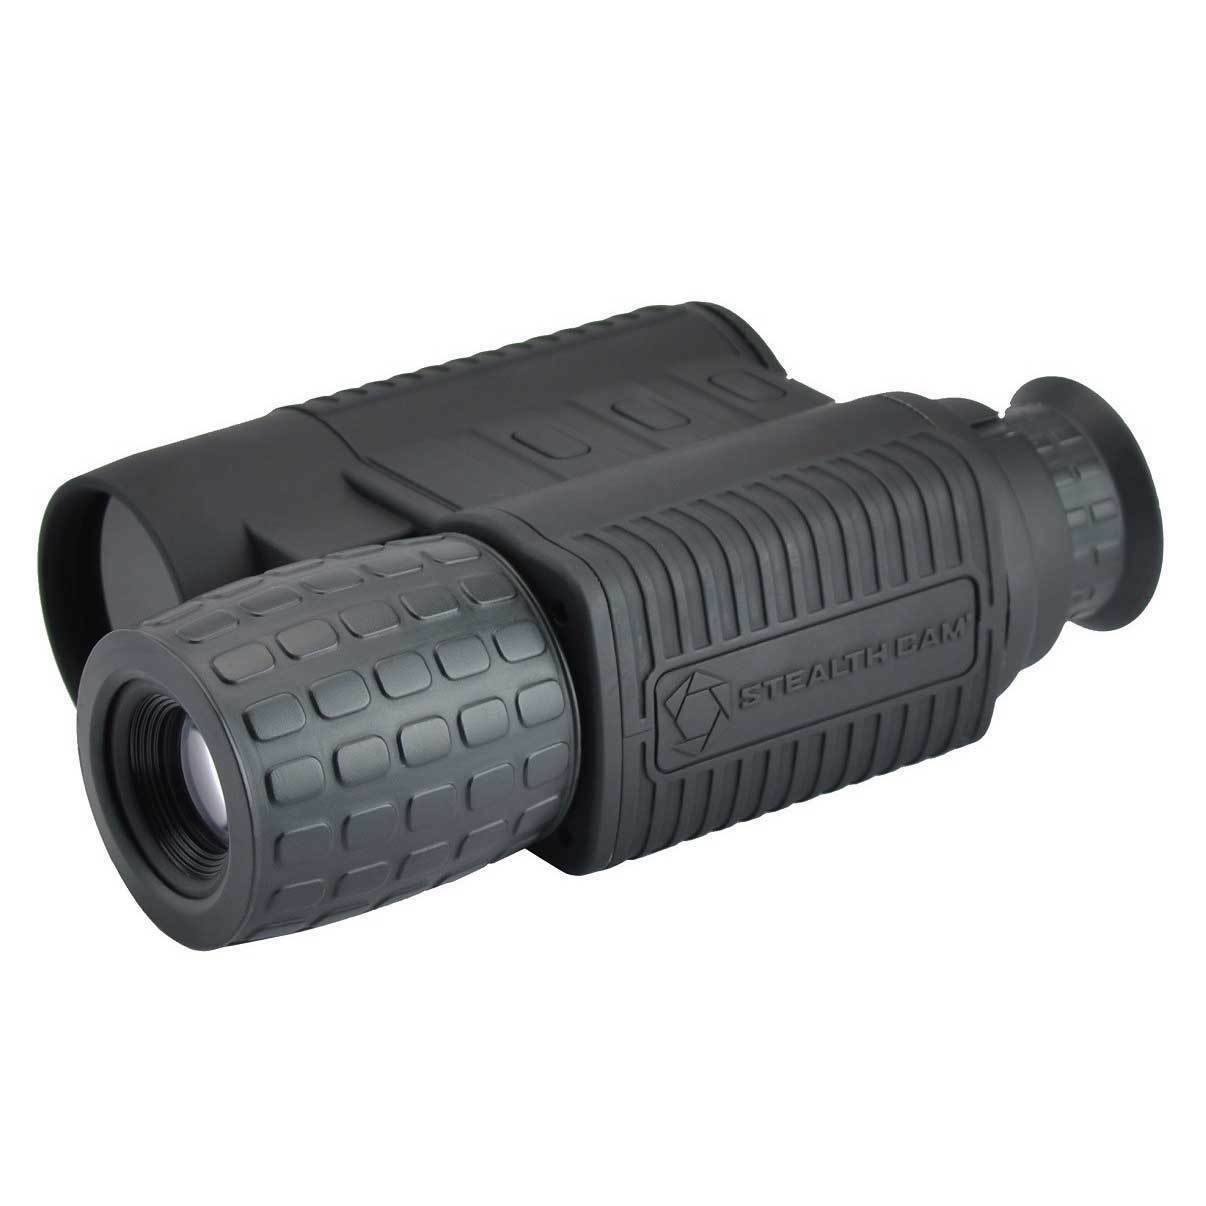 STEALTH CAM NIGHT VISION 9x Zoom 400 Ft Sight Monocular STC-